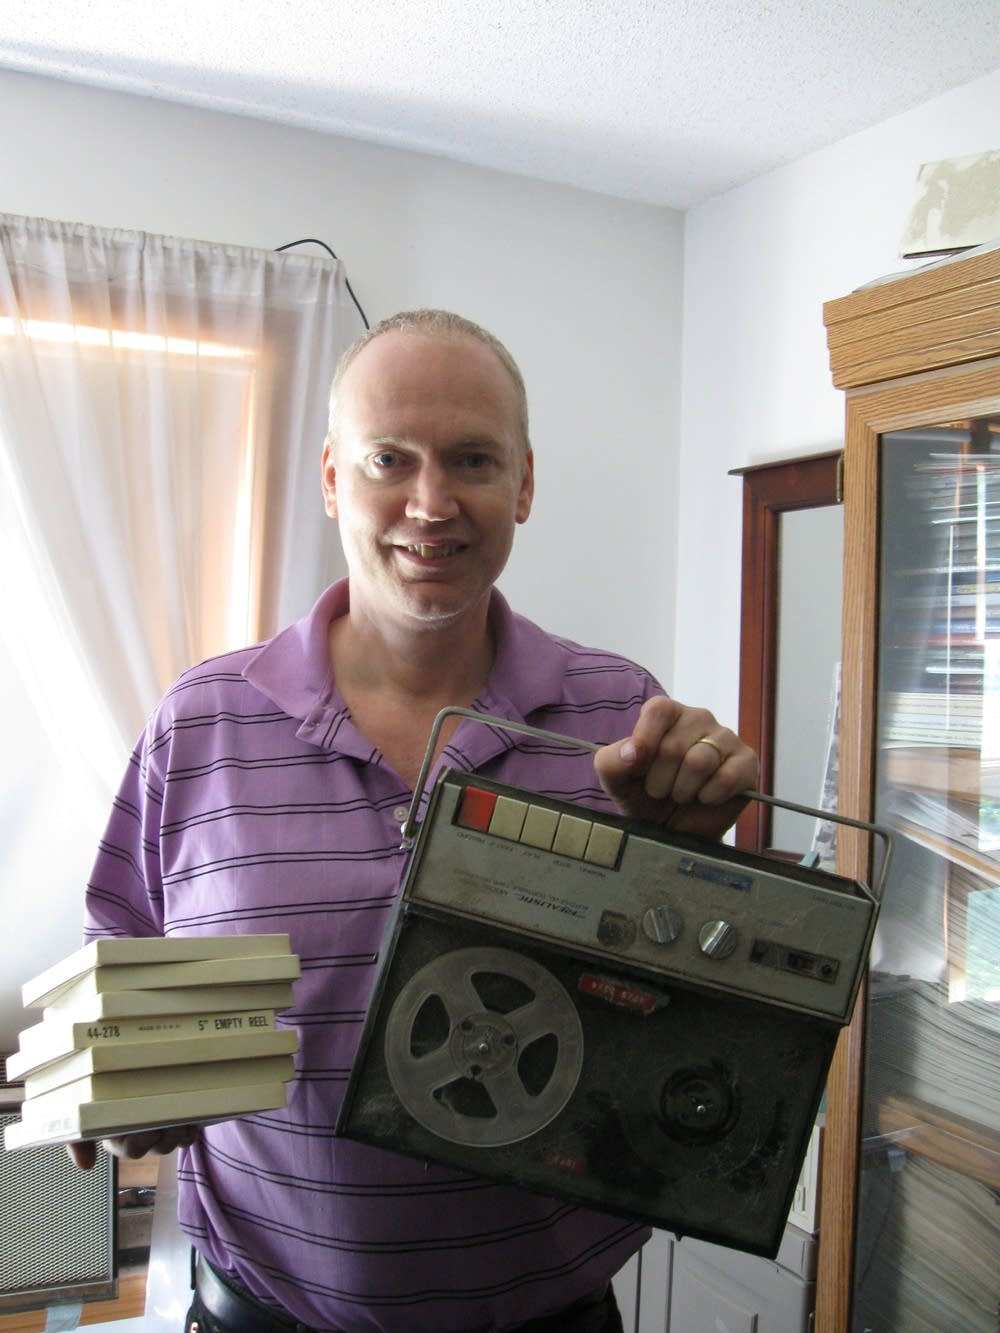 Russell Jones and his vintage tape recorder